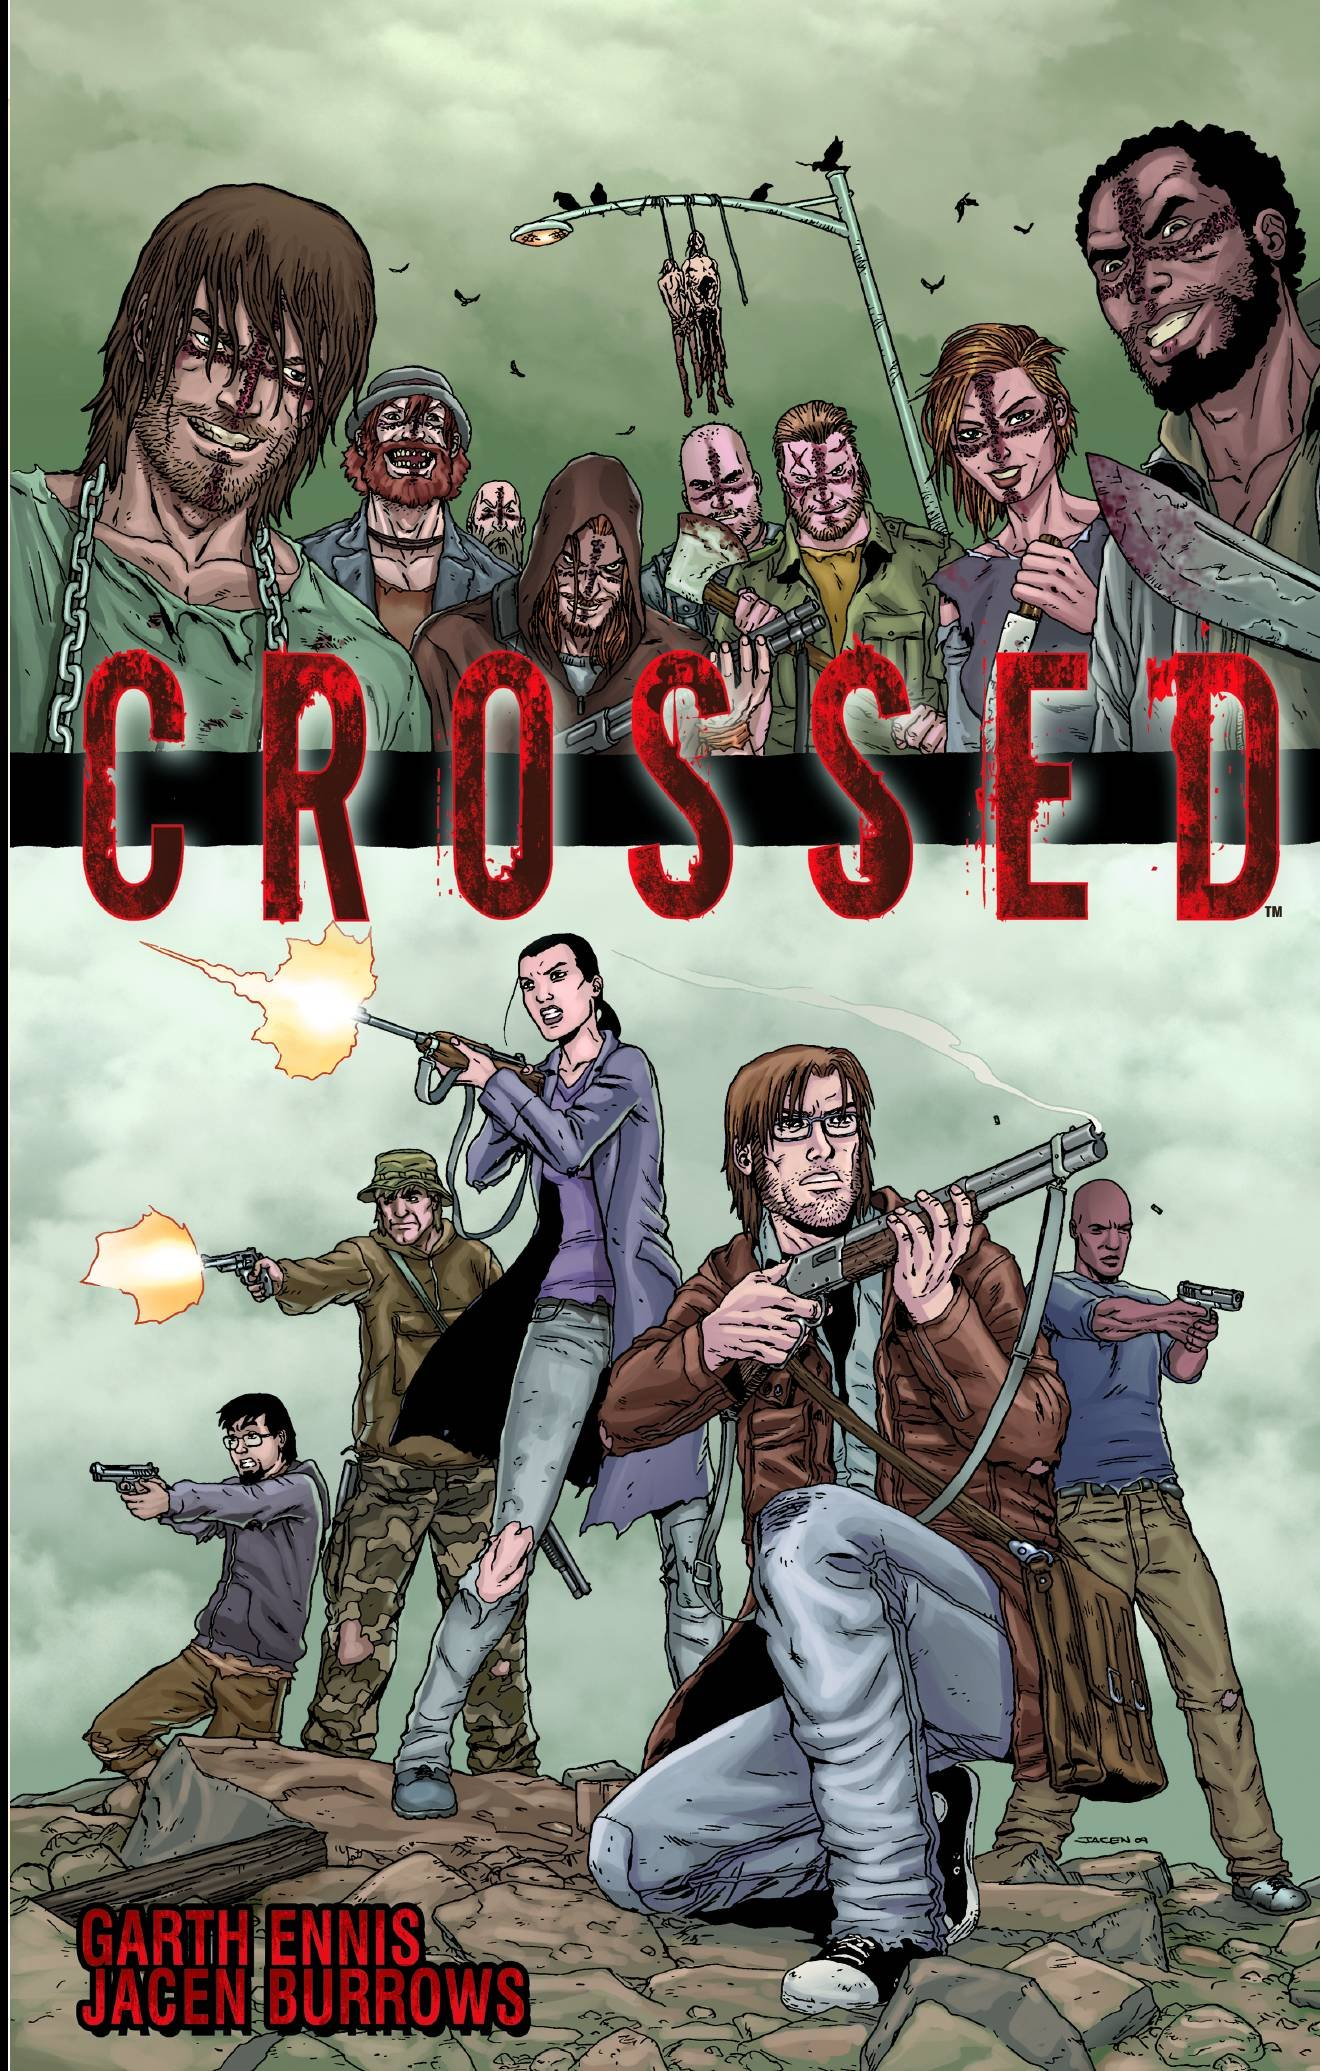 crossed vol 1 garth ennis jacen burrows 8601404404801 amazon